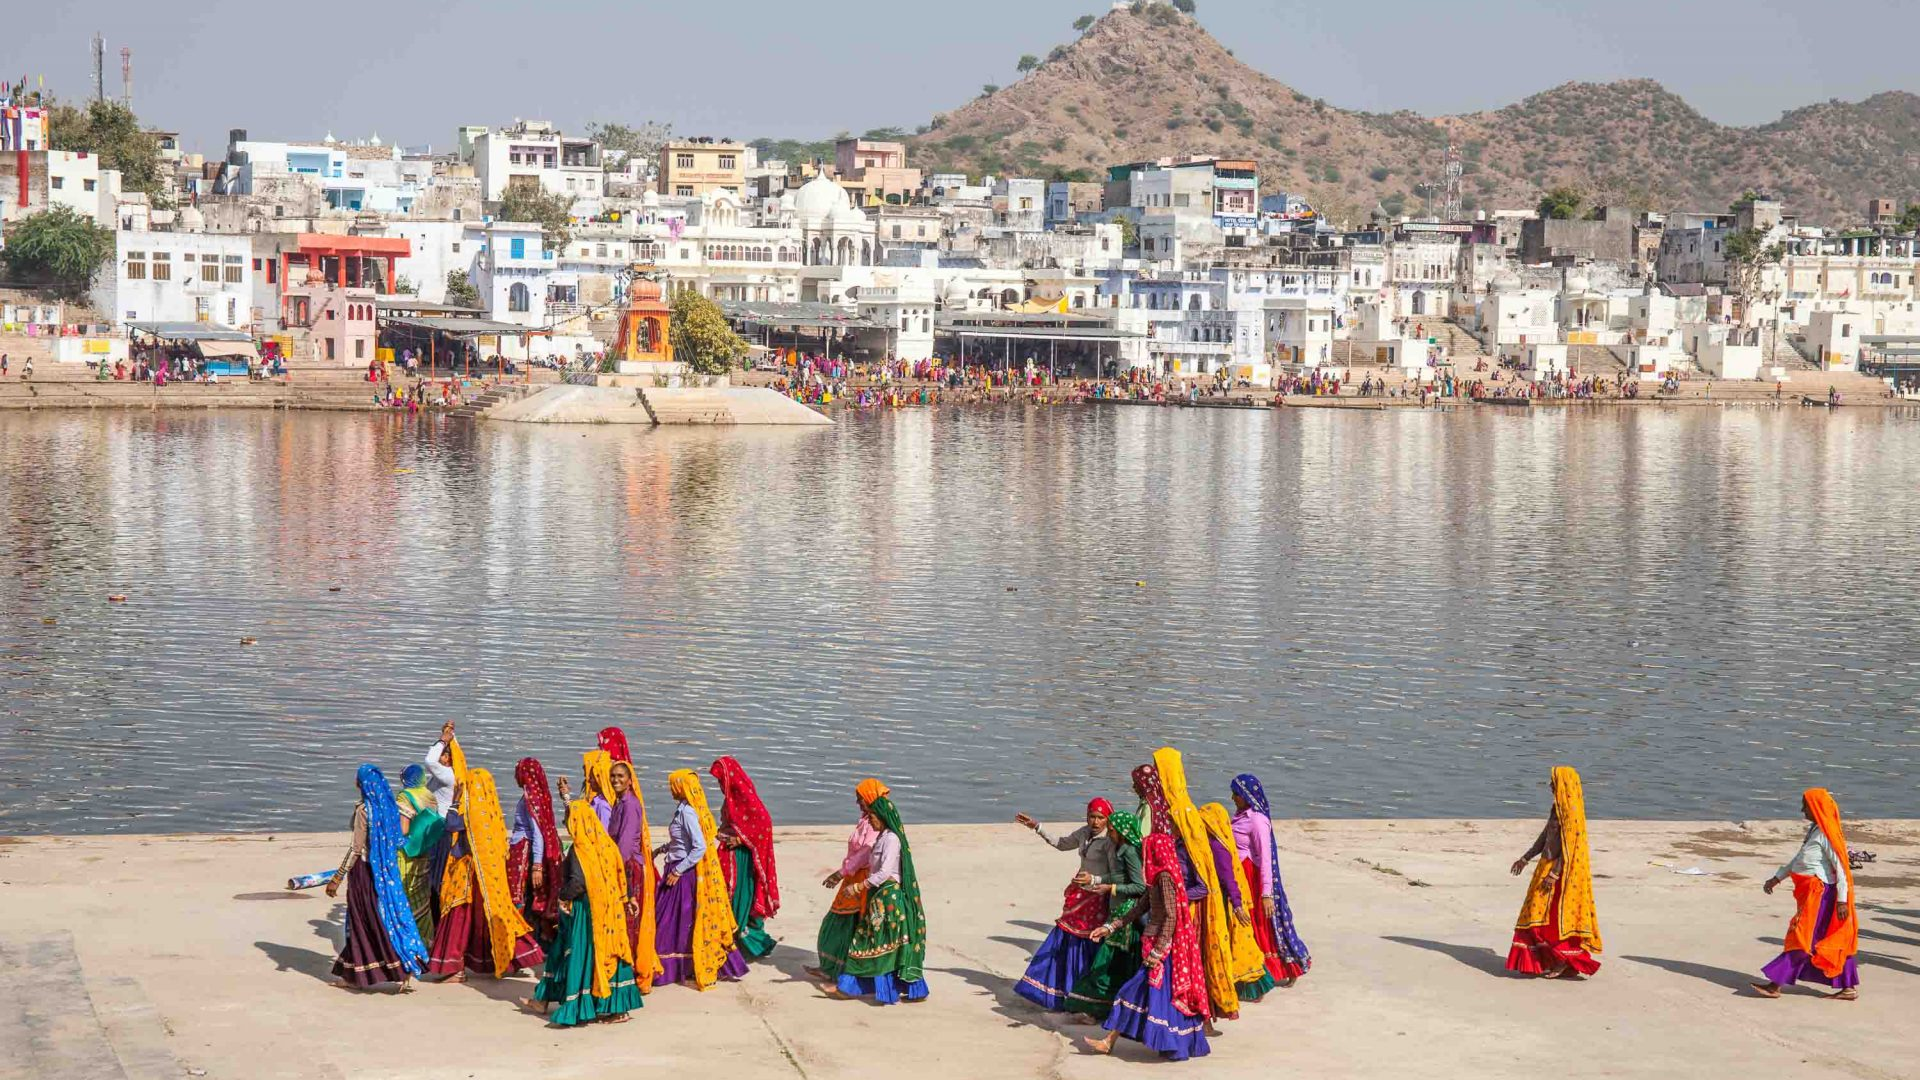 Rajasthani women walk along the banks of Pushkar Lake, with Pushkar town in the background.